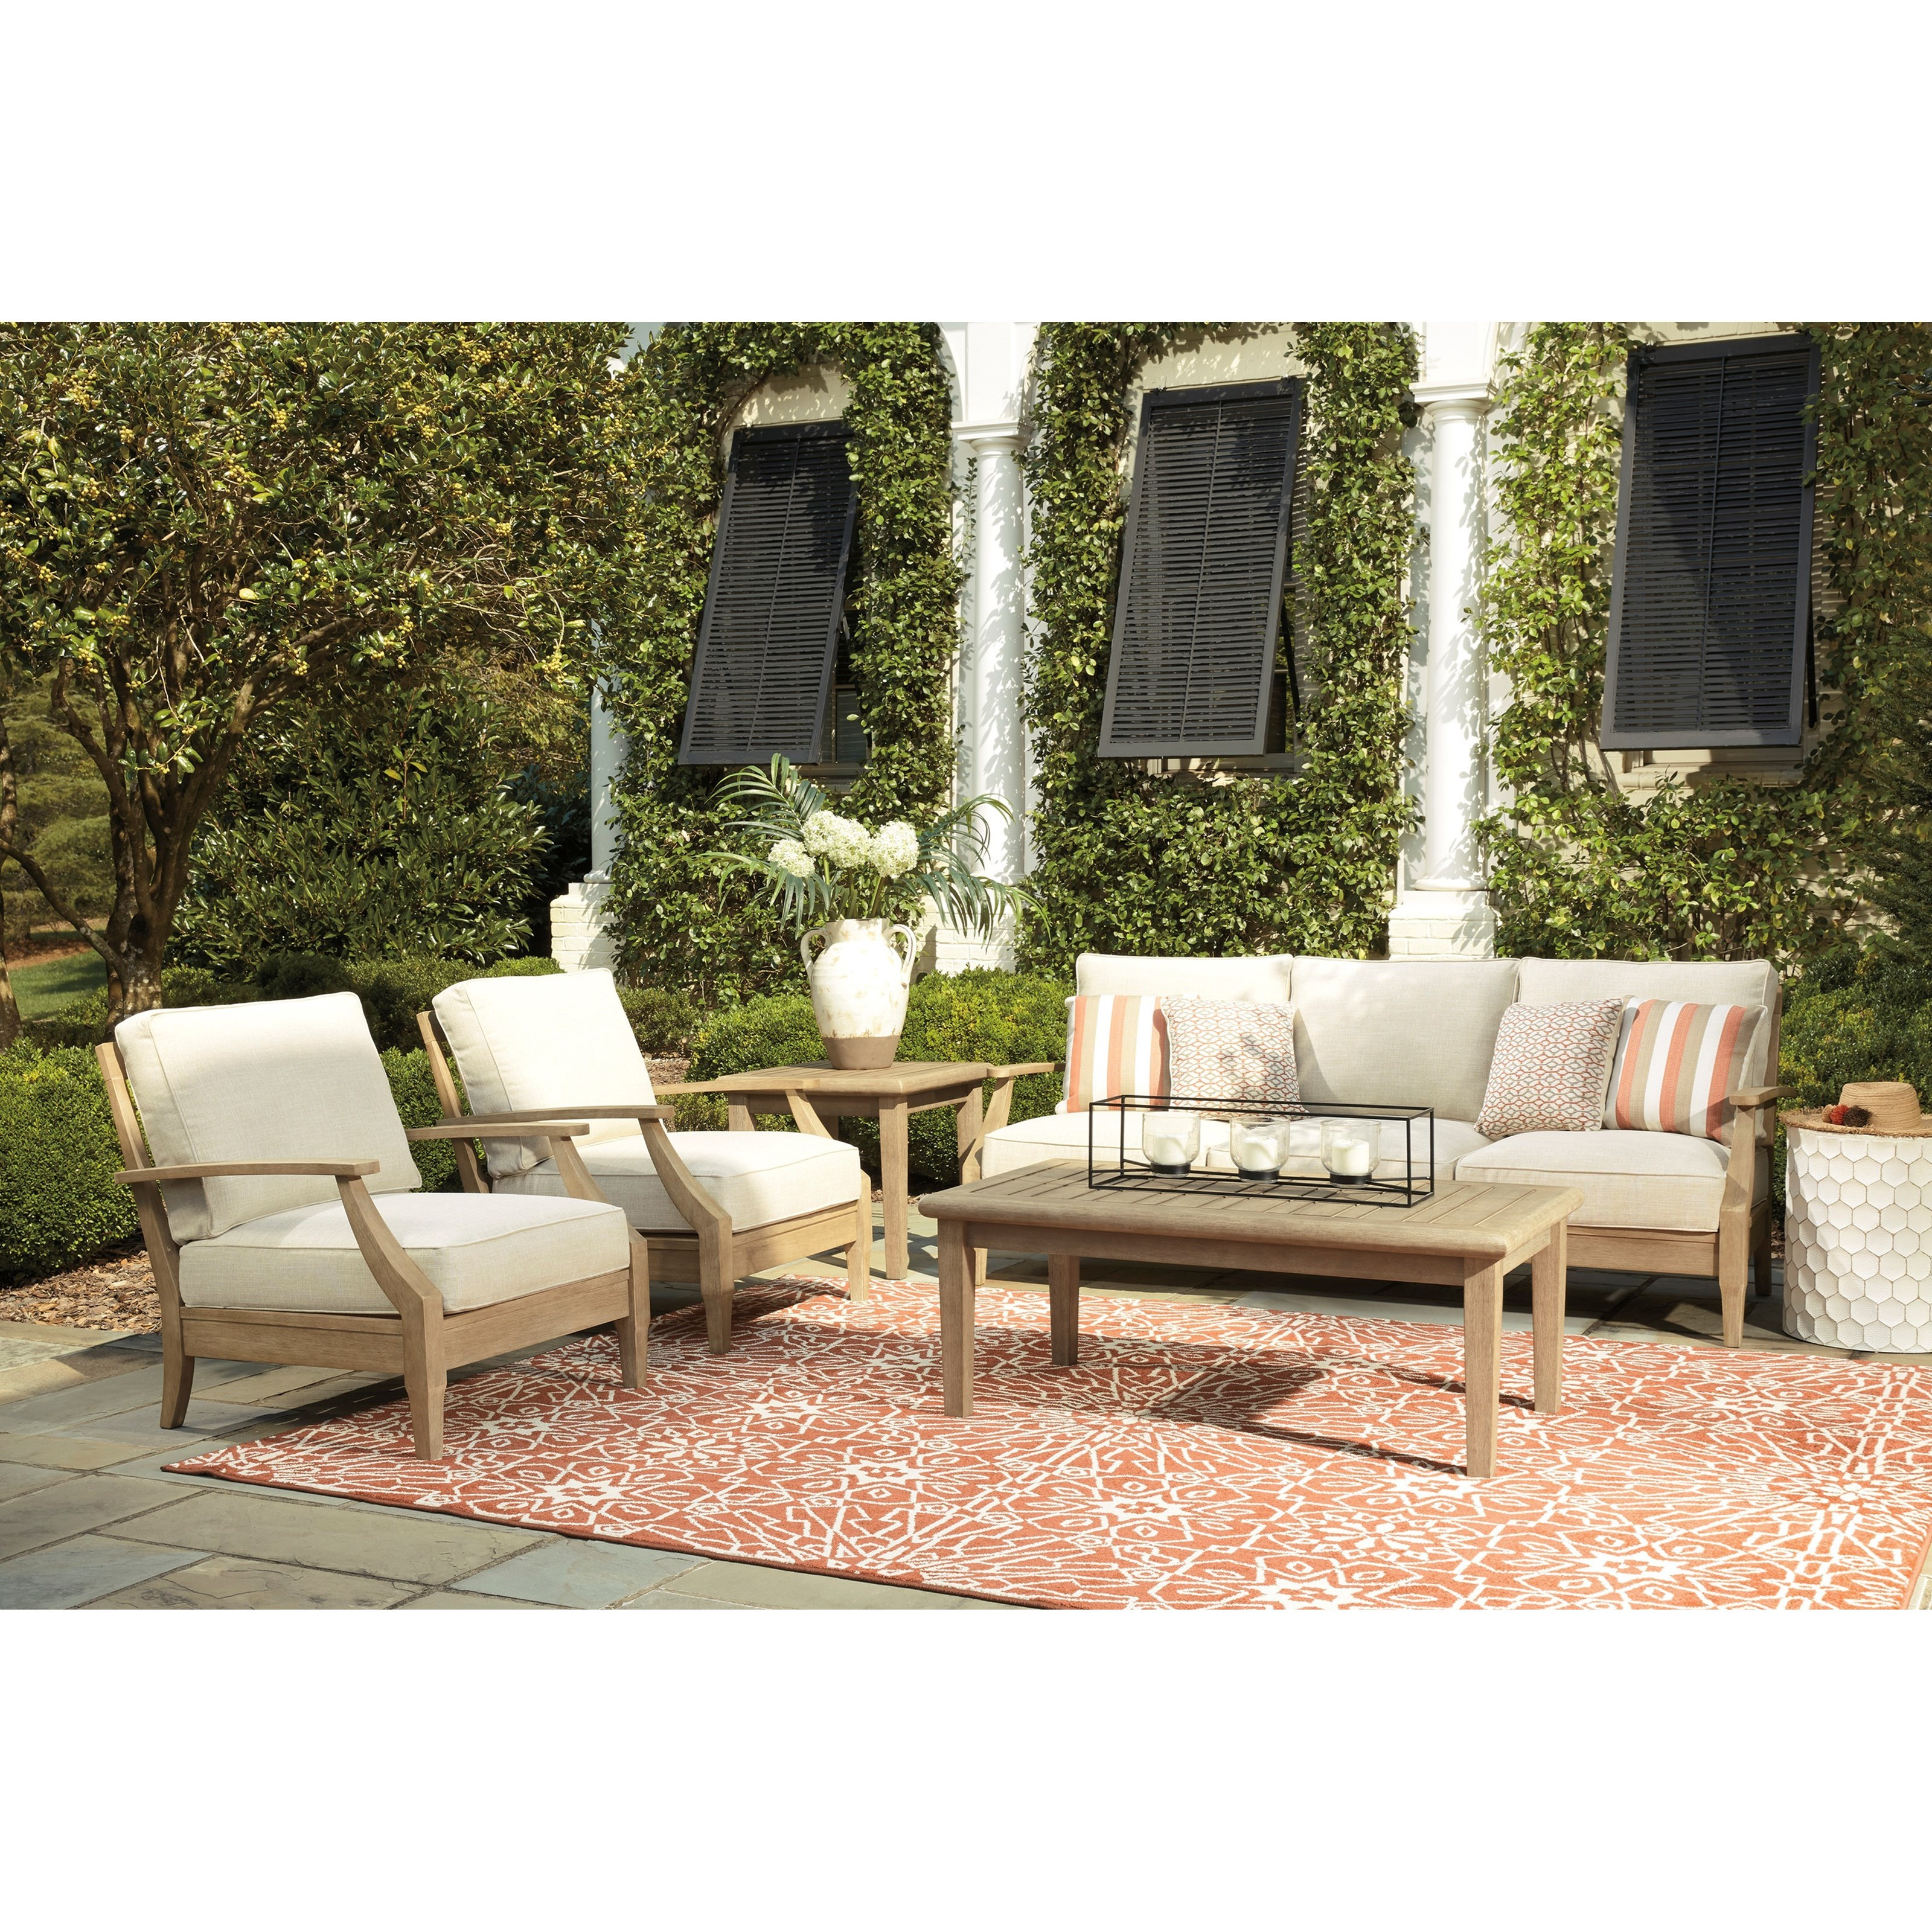 Clare View Outdoor Conversation Set by Signature at Walker's Furniture